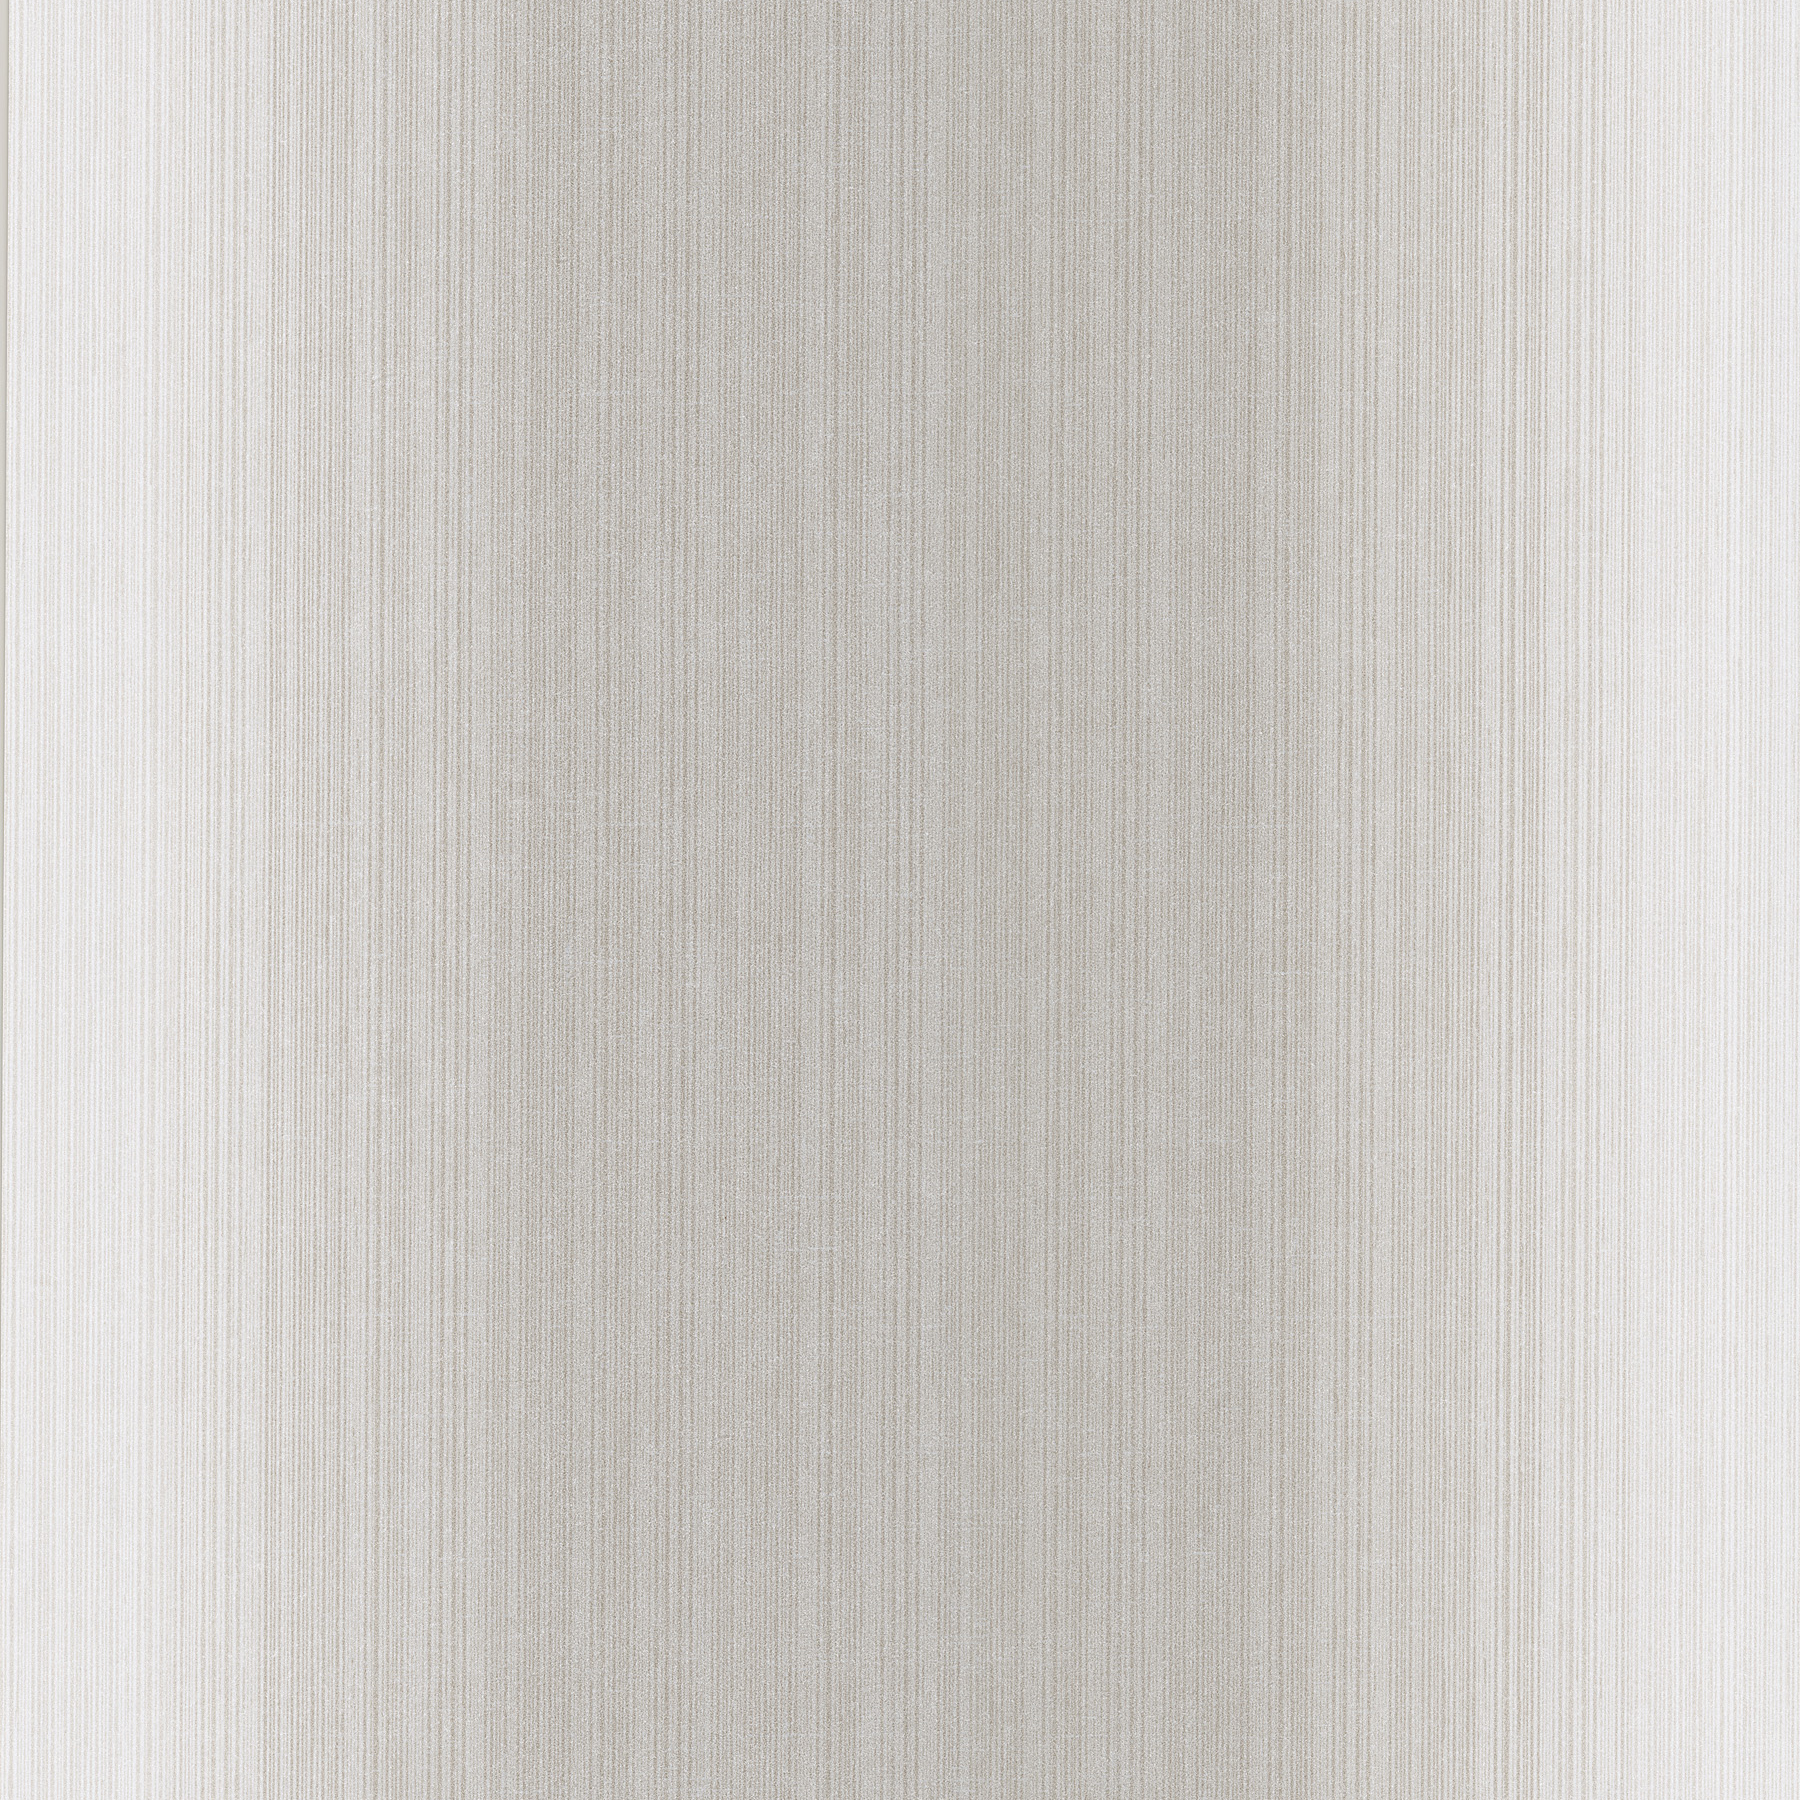 Picture of Blanch Taupe Ombre Texture Wallpaper